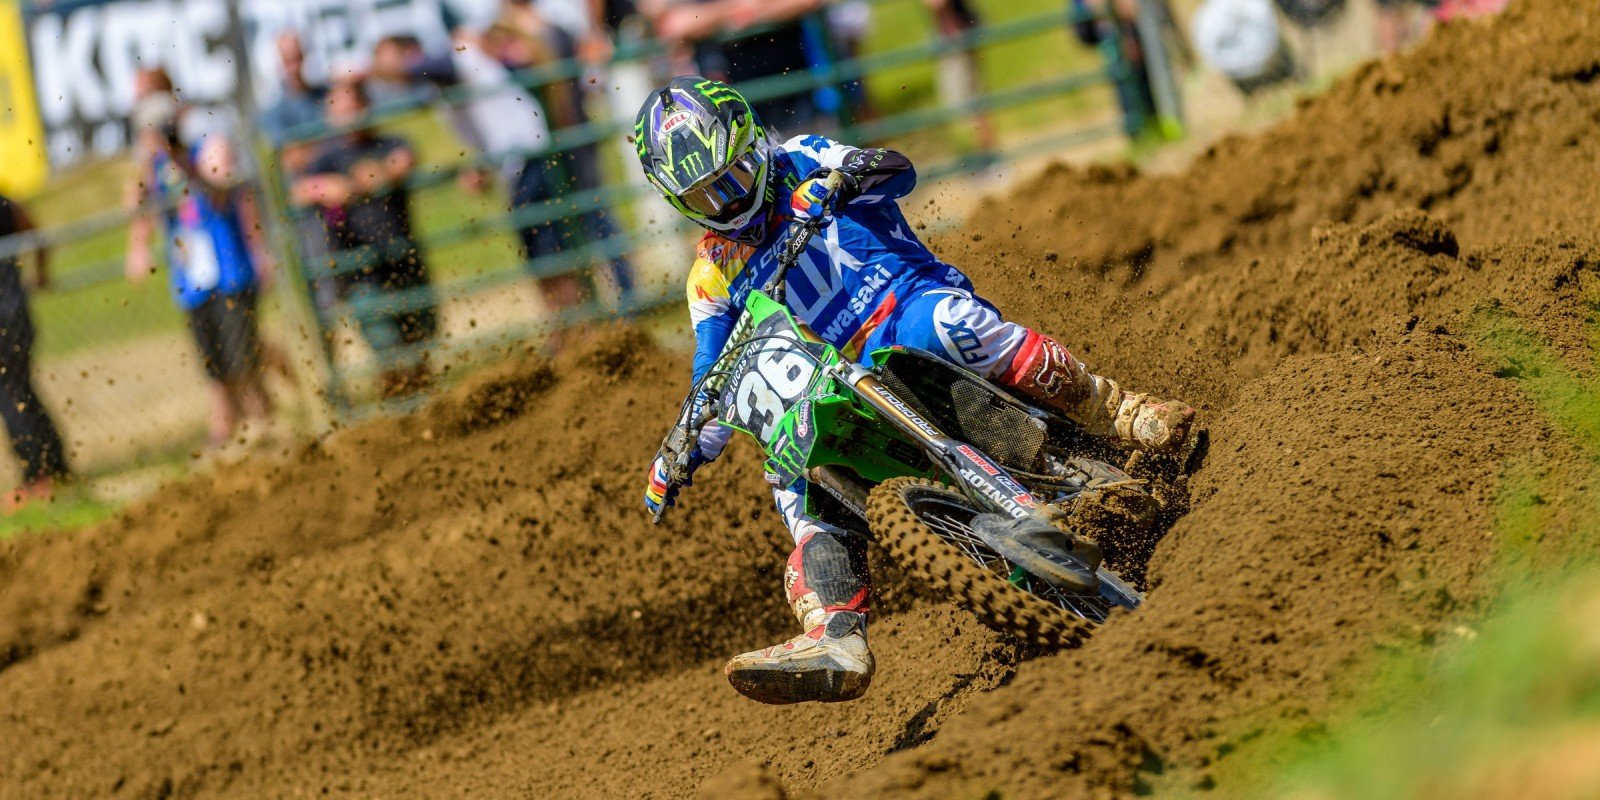 The 2017 Lucas Oil Pro Motocross Championship is almost complete, as this weekend's 2017 Budds Creek MX marks the eleventh round of the series.